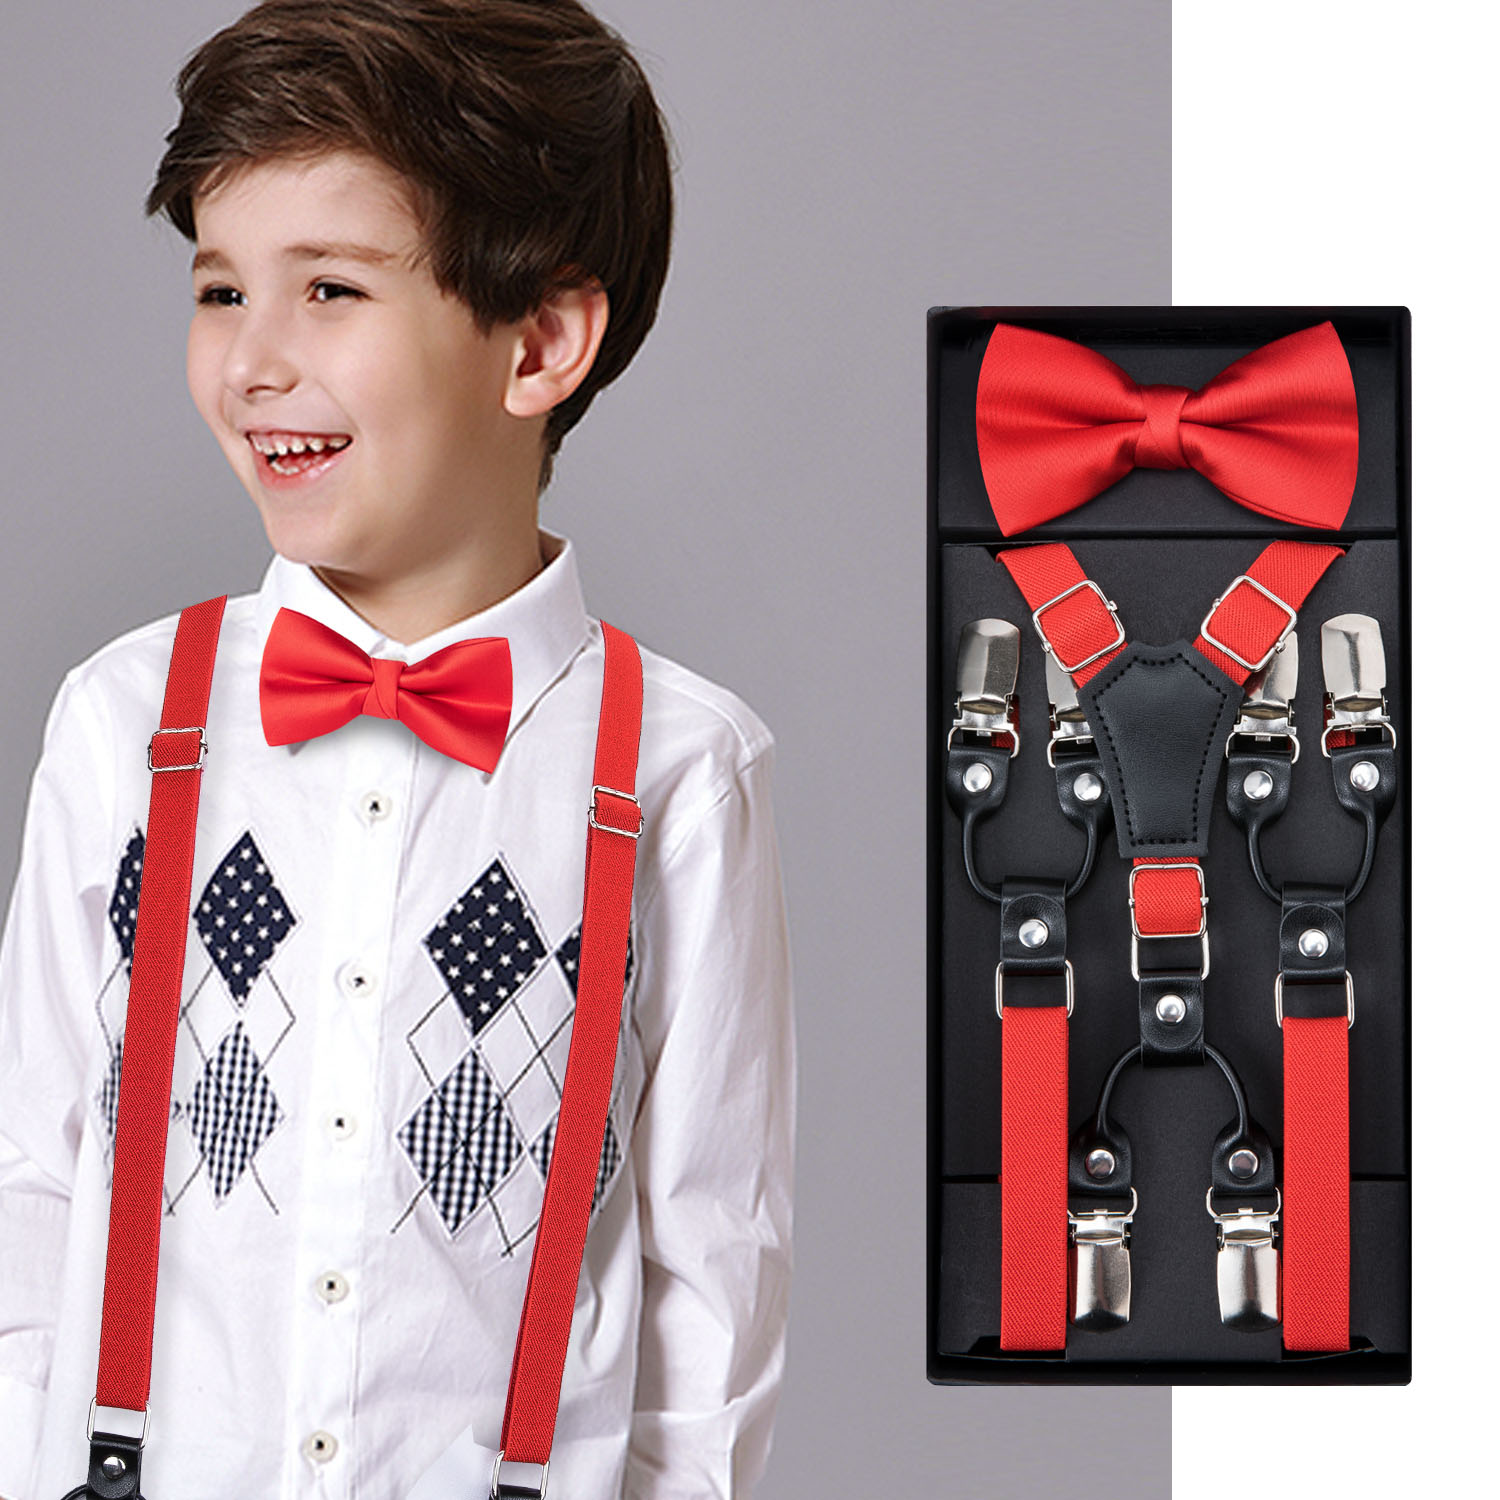 Kids Suspenders Set Boys Girls Wedding Red Bow Tie Elastic Suspender Sets Children Adjustable Y-Back Brace Belt DH-014 DiBanGu